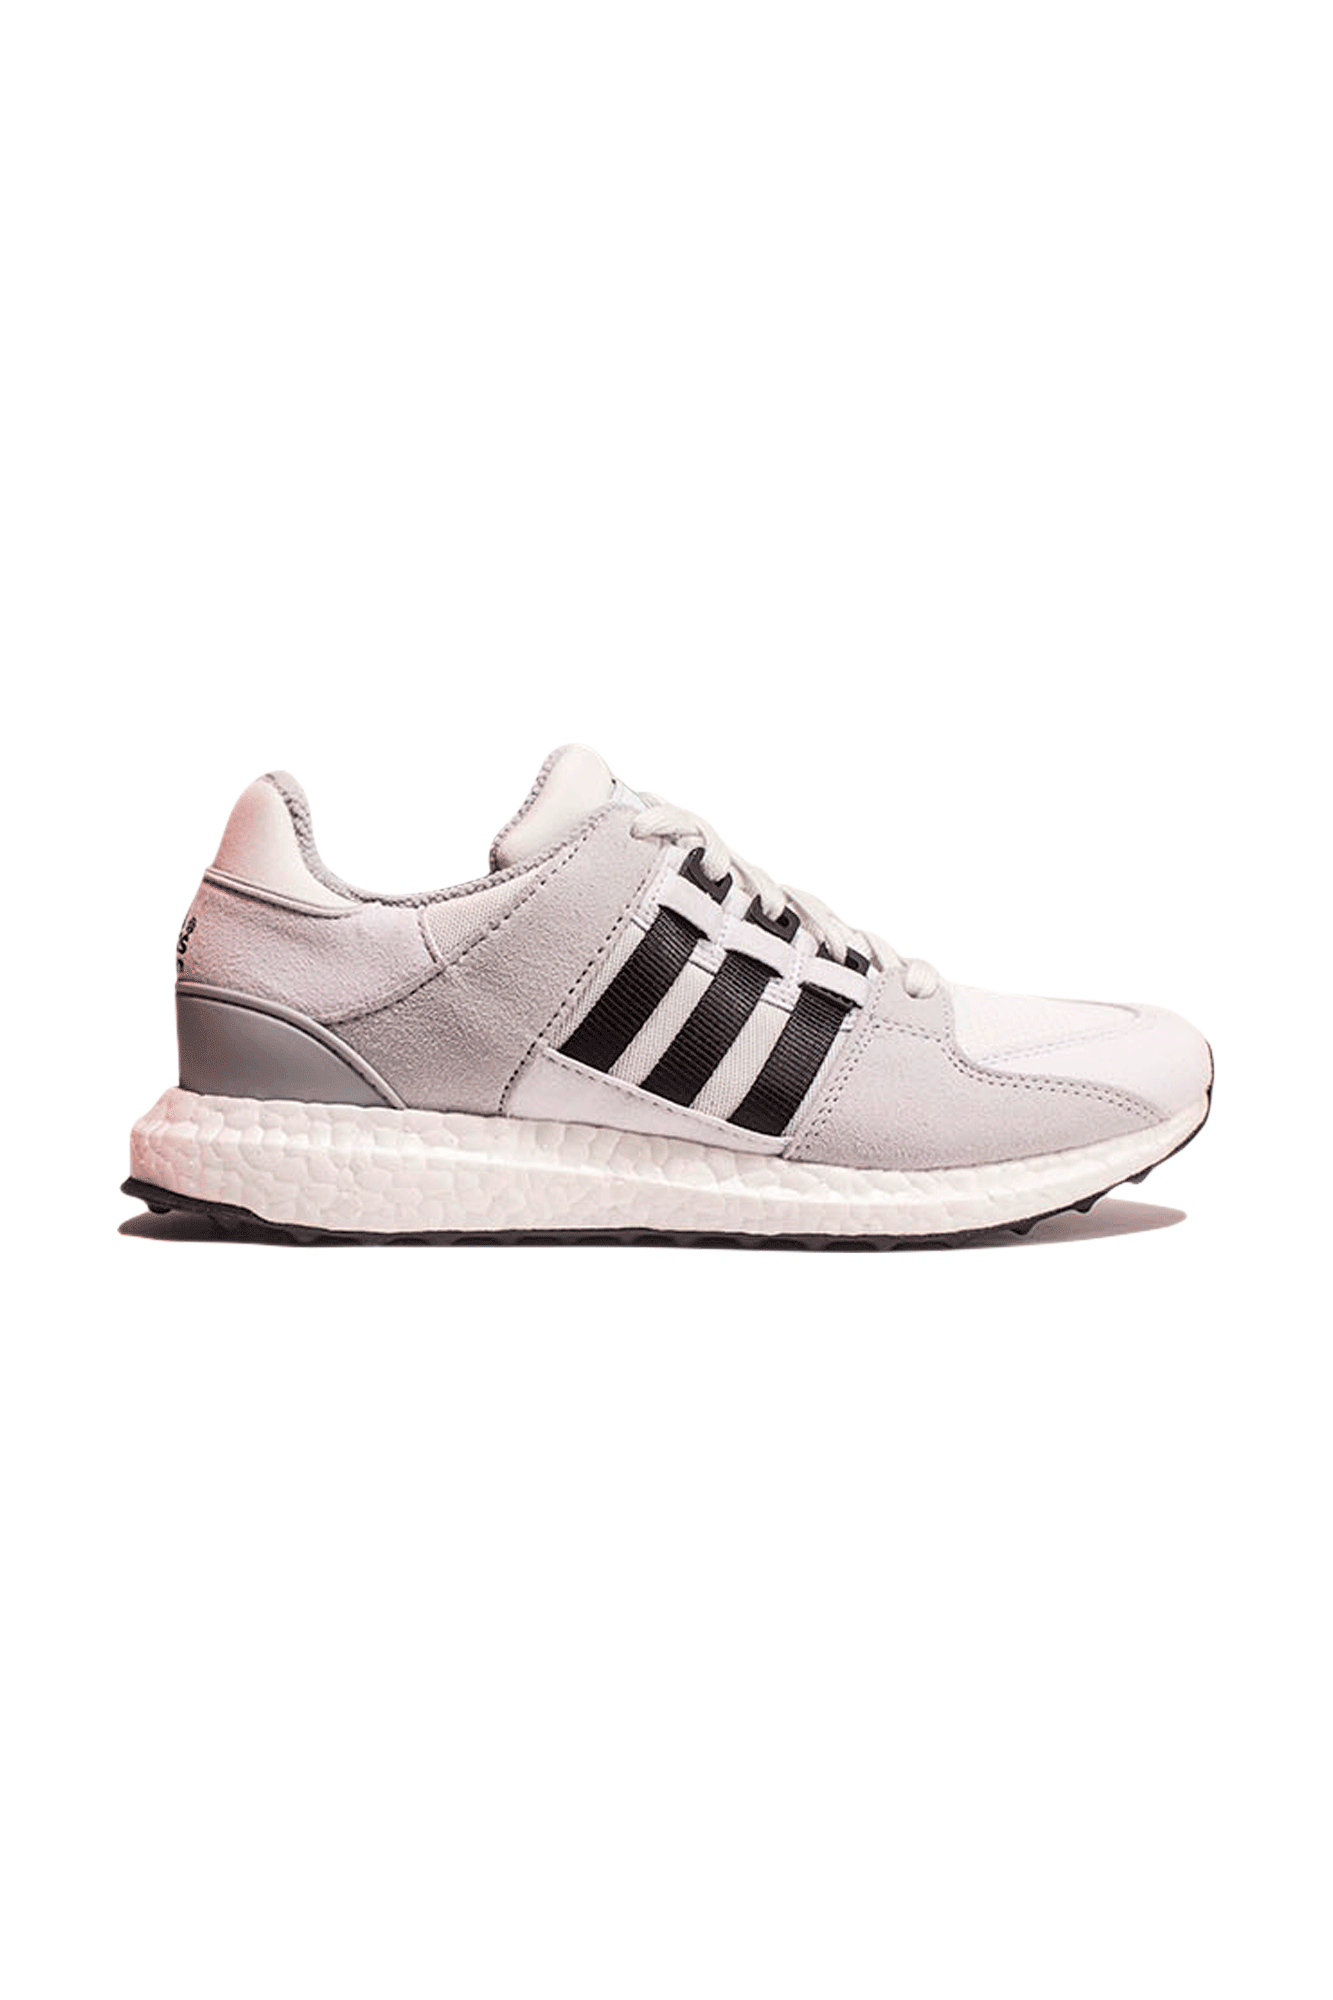 Adidas Originals Sneakers Equipment Support Boost White S79112#000#C0006#6,5 - One Block Down